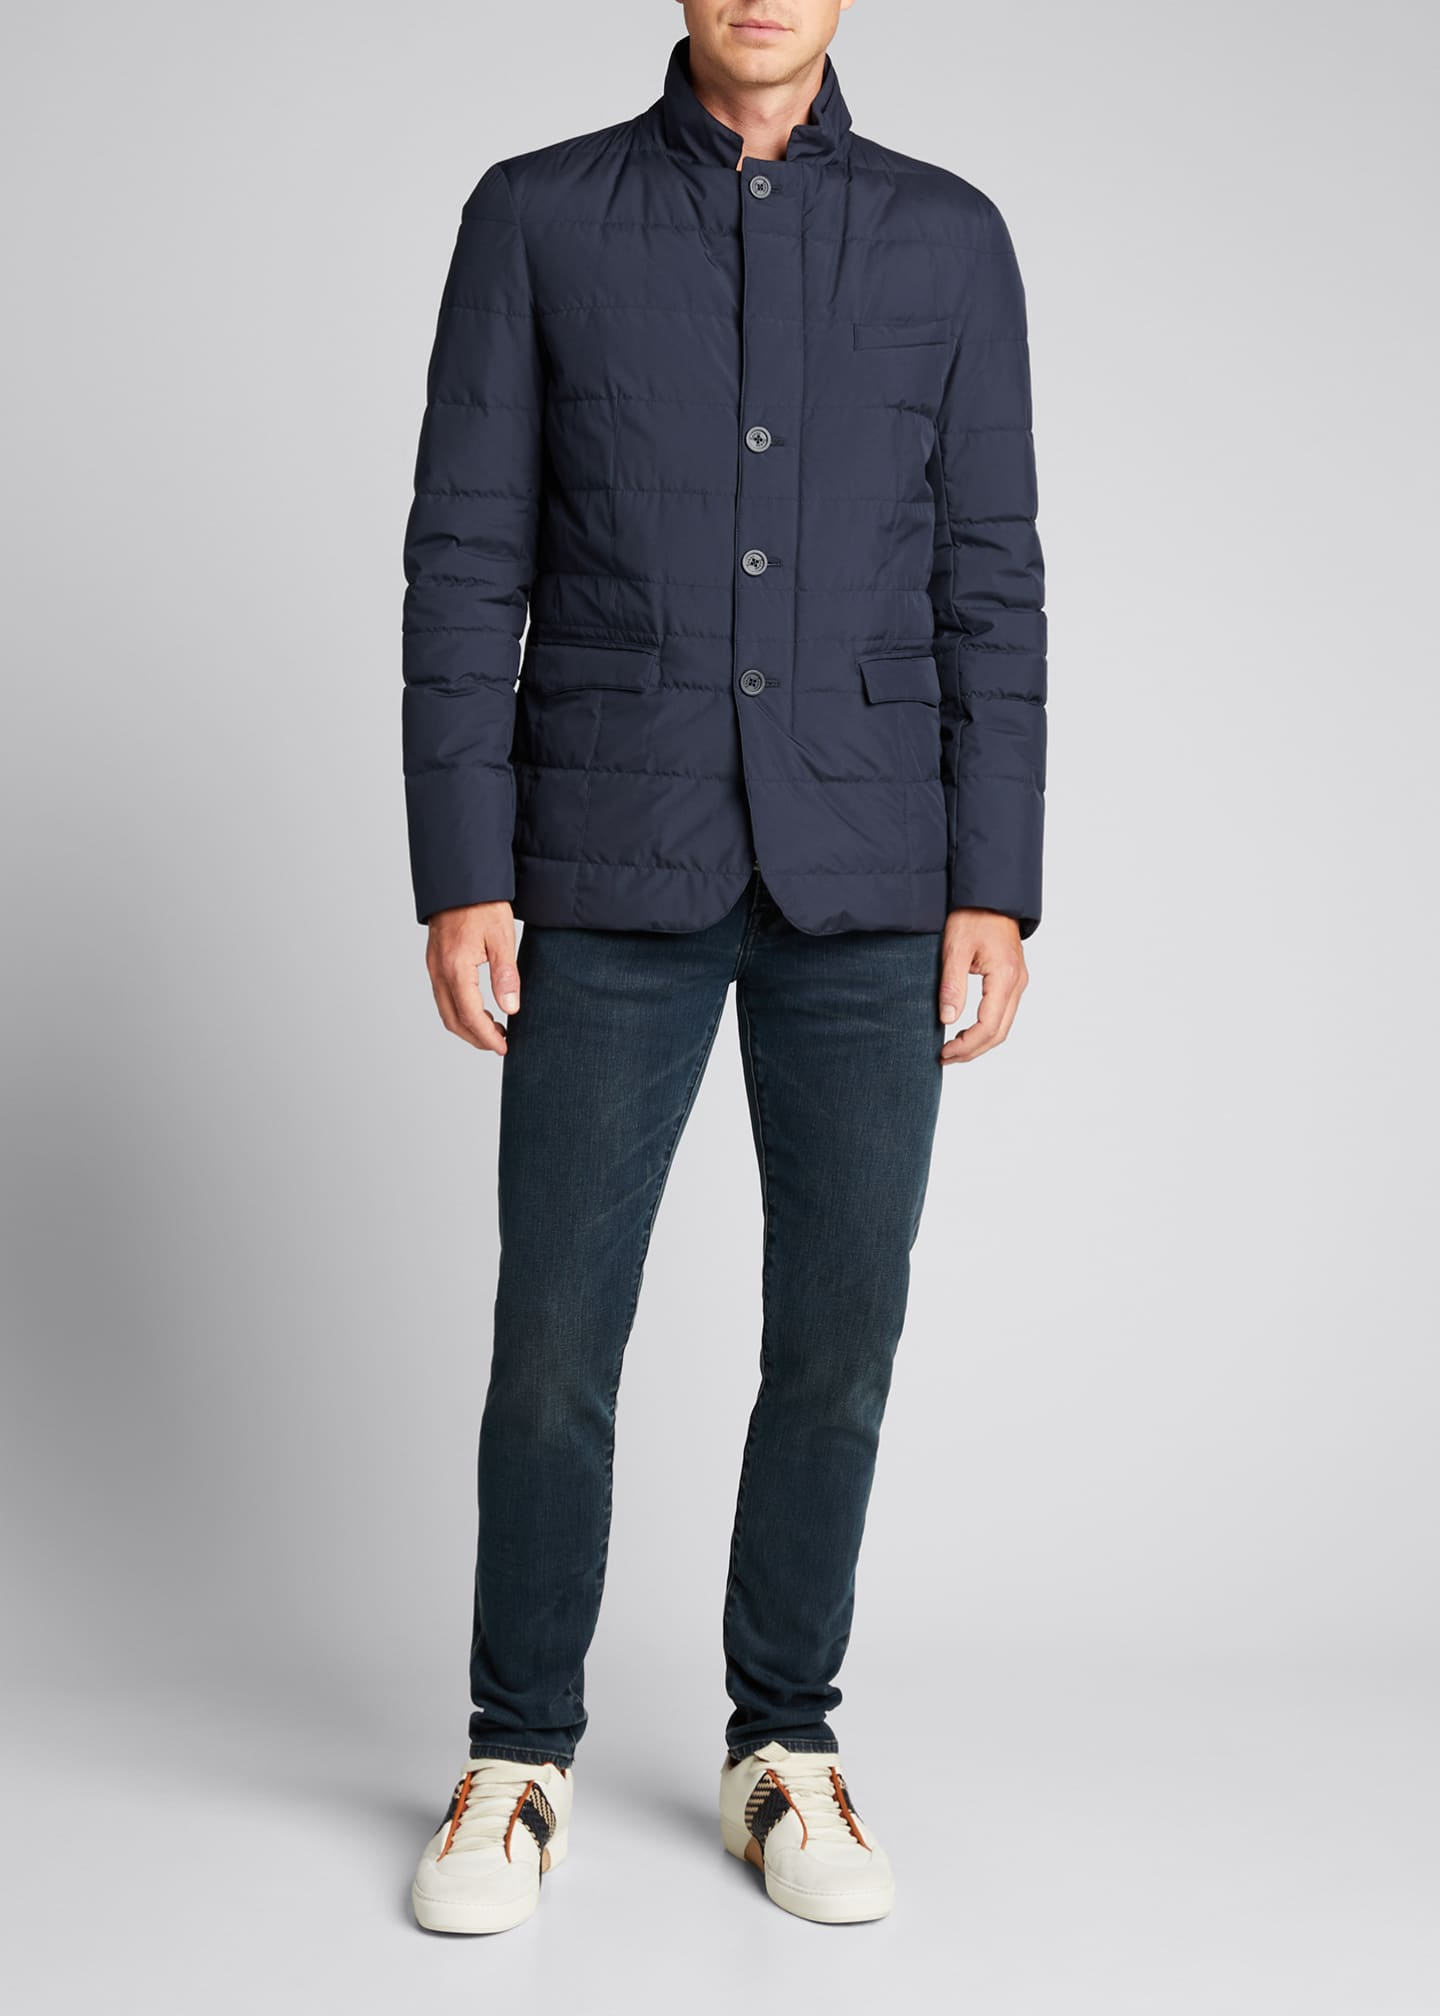 Image 1 of 5: Men's Quilted Three-Button Blazer